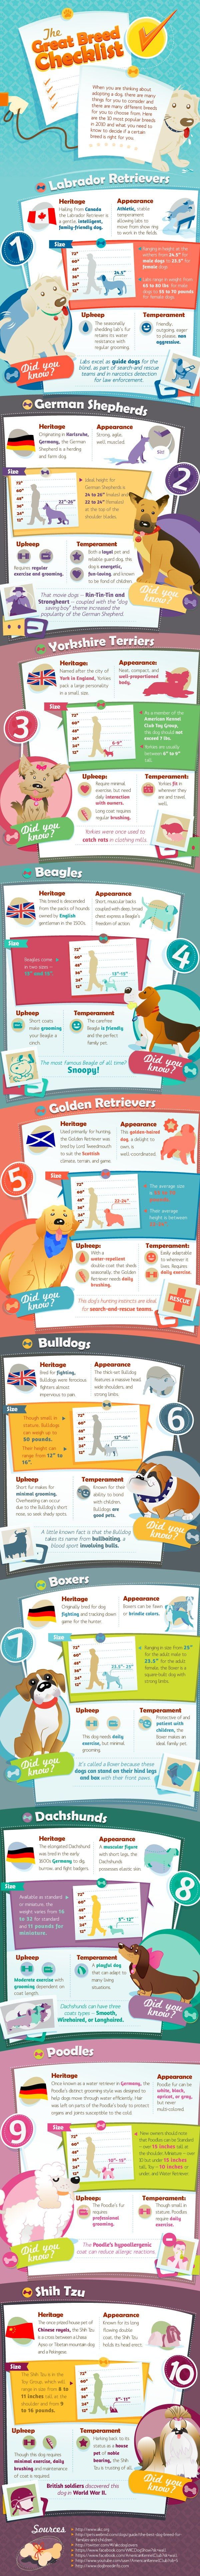 Going to Adopt a dog check out: The Great Breed Checklist - Infographic